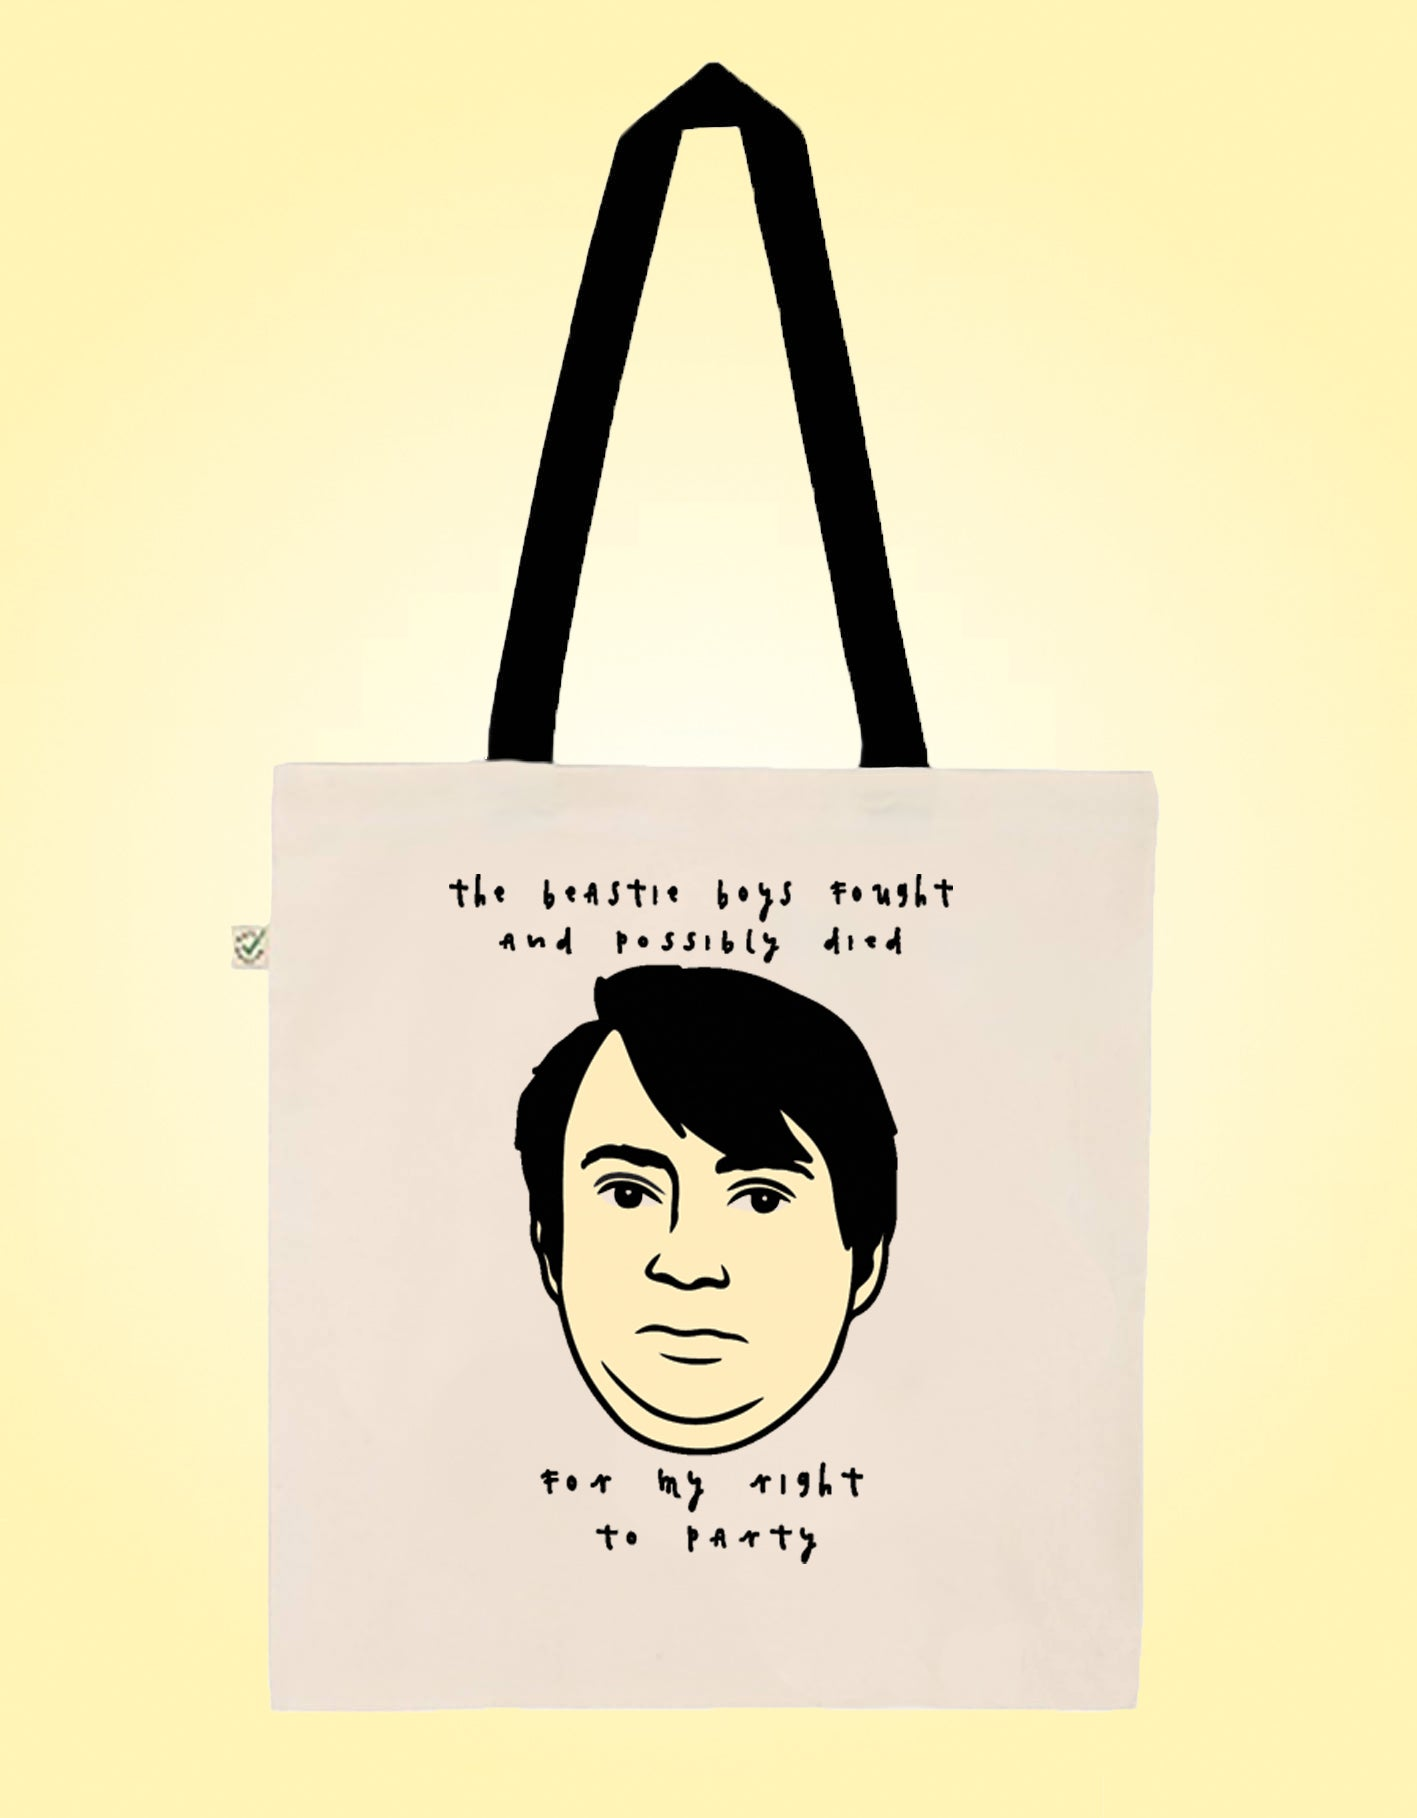 Beastie Boys Quote - Peep Show - Earth Positive Ethical tote.